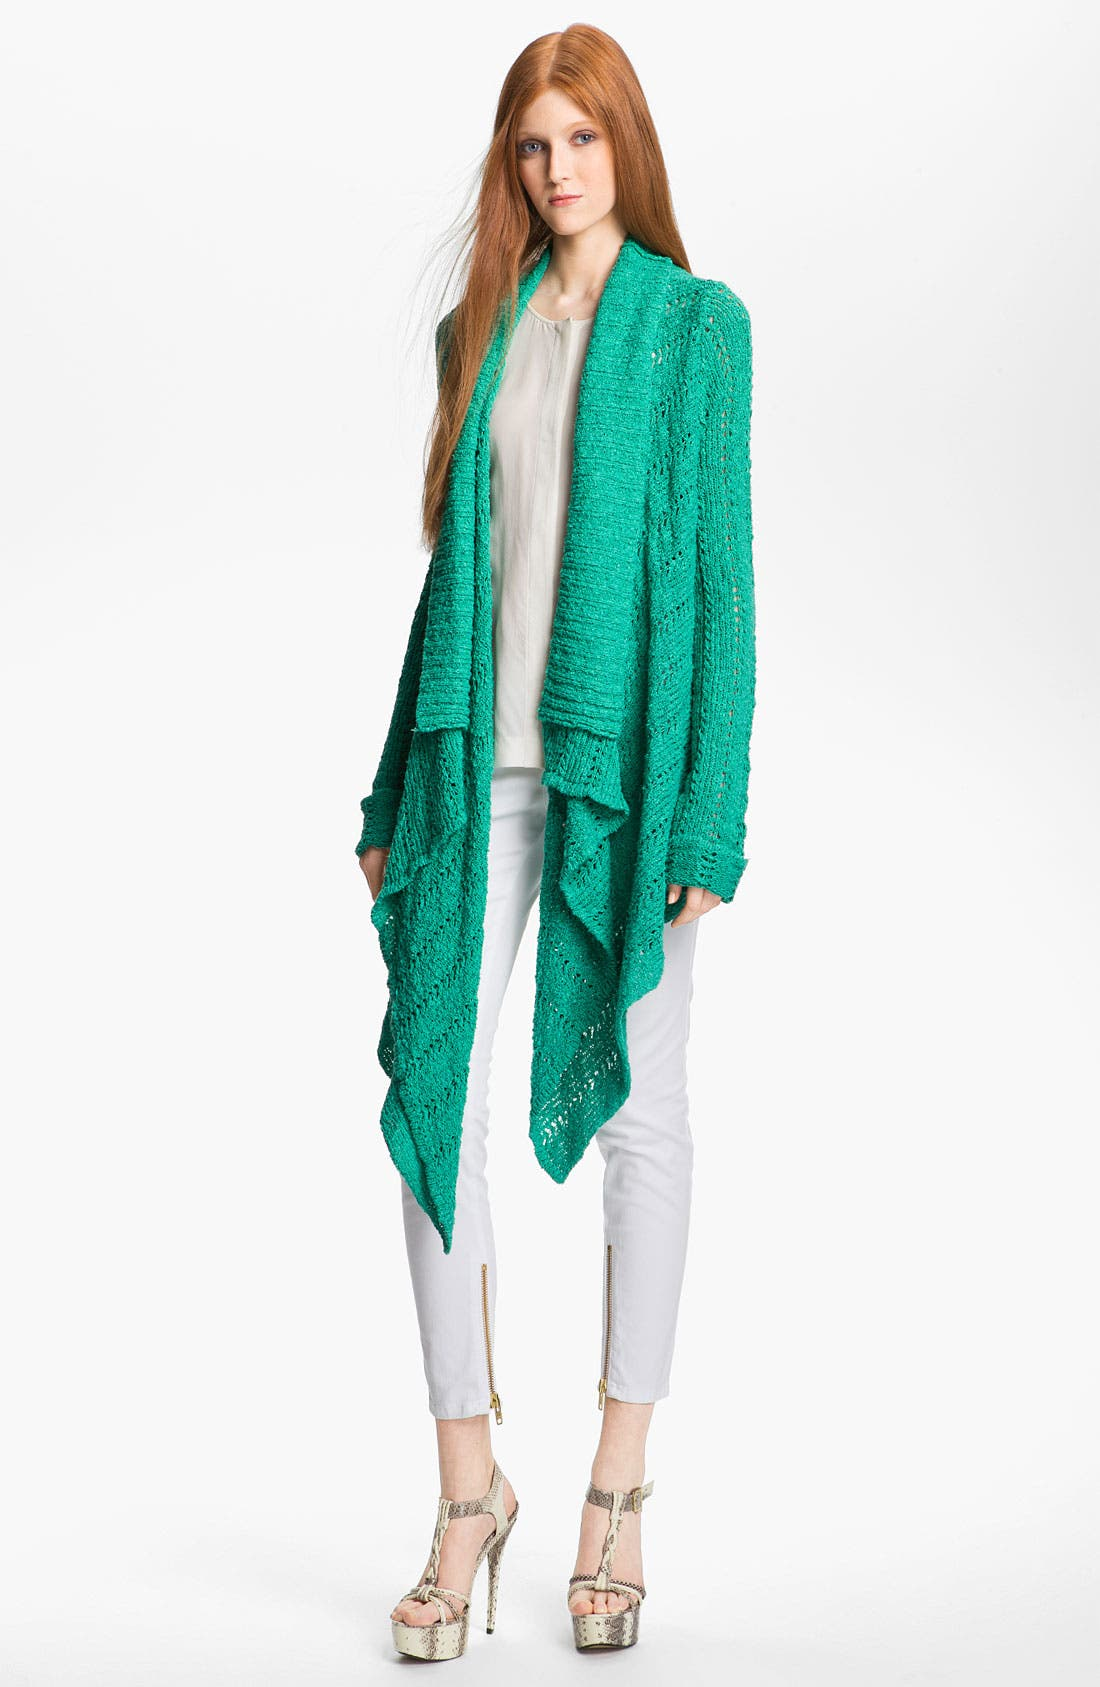 Alternate Image 1 Selected - Rachel Zoe Cardigan, Top & Skinny Jeans